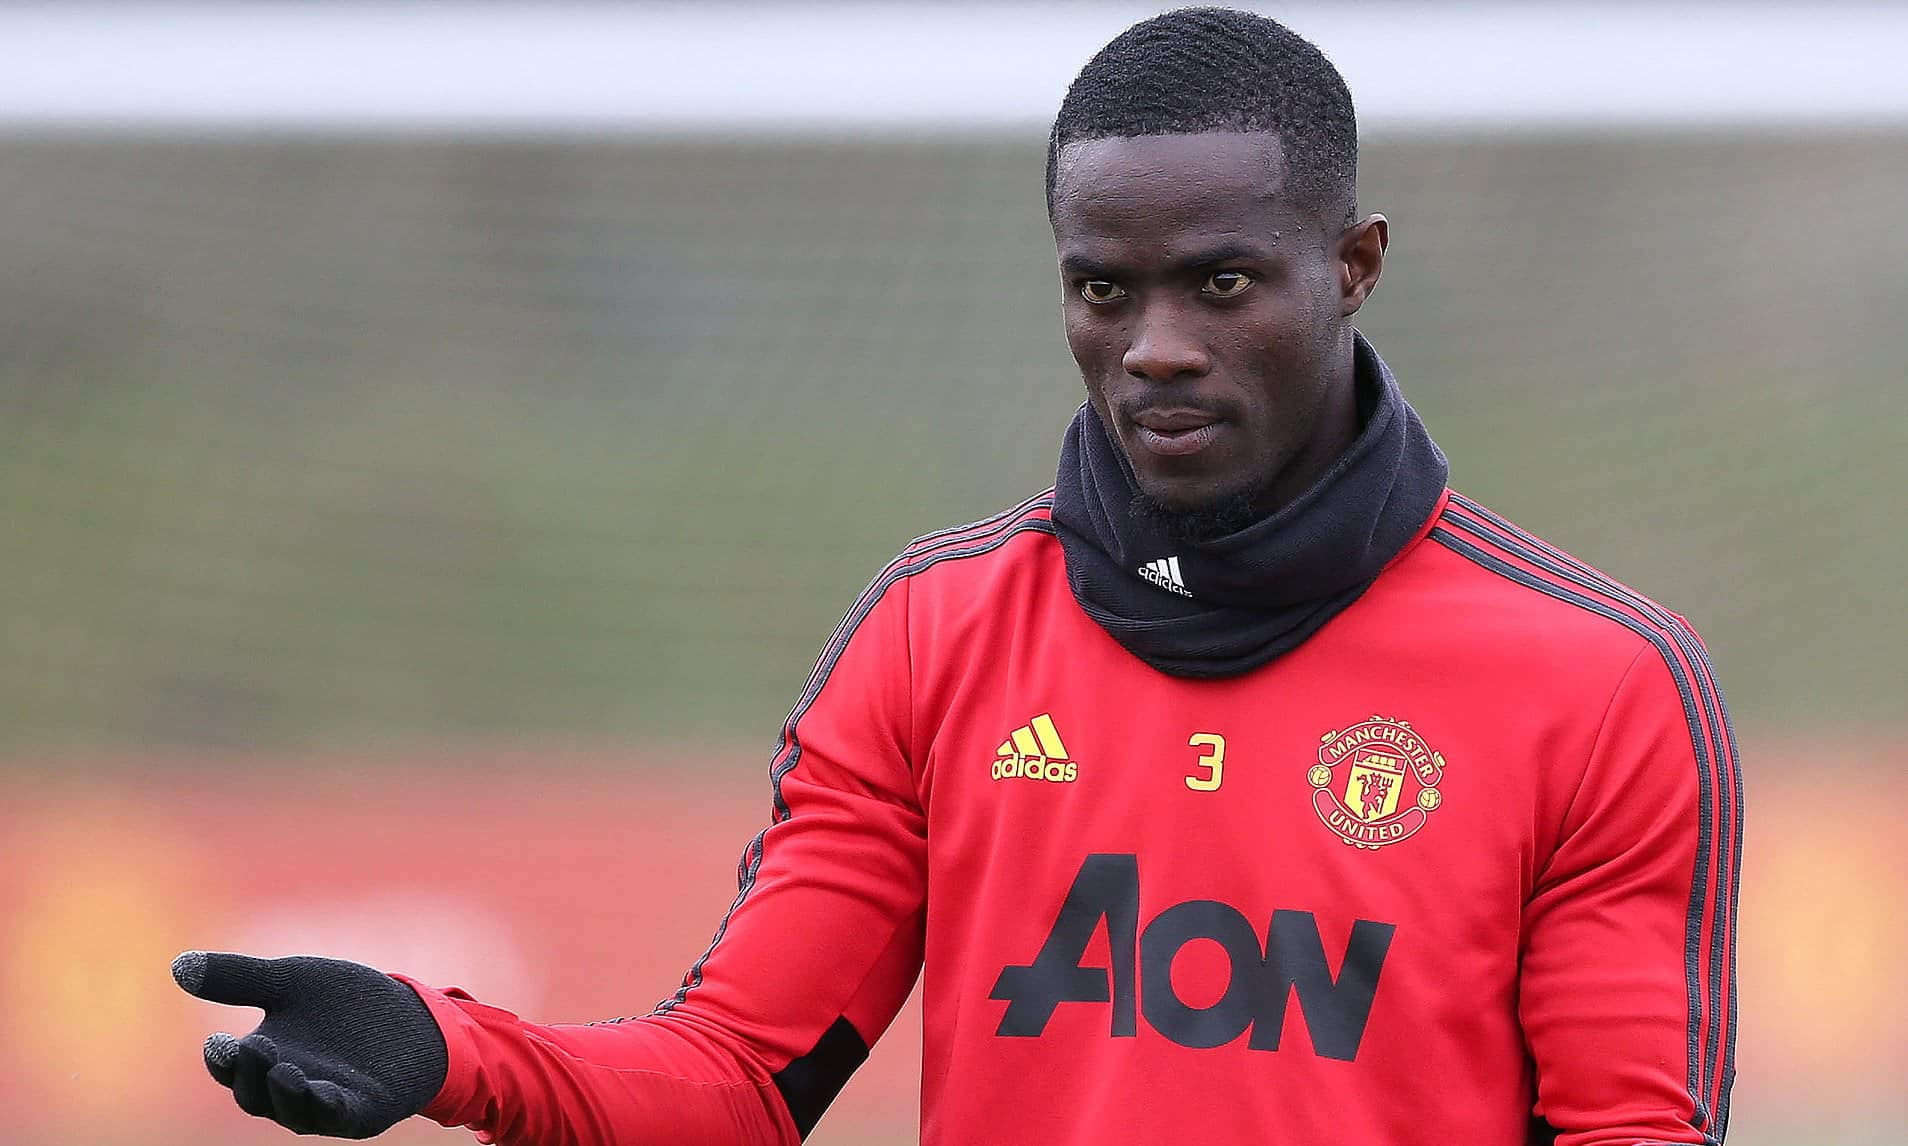 uel-final-ill-use-sign-to-diversified-proposals-bailly-warns-man-united.jpg